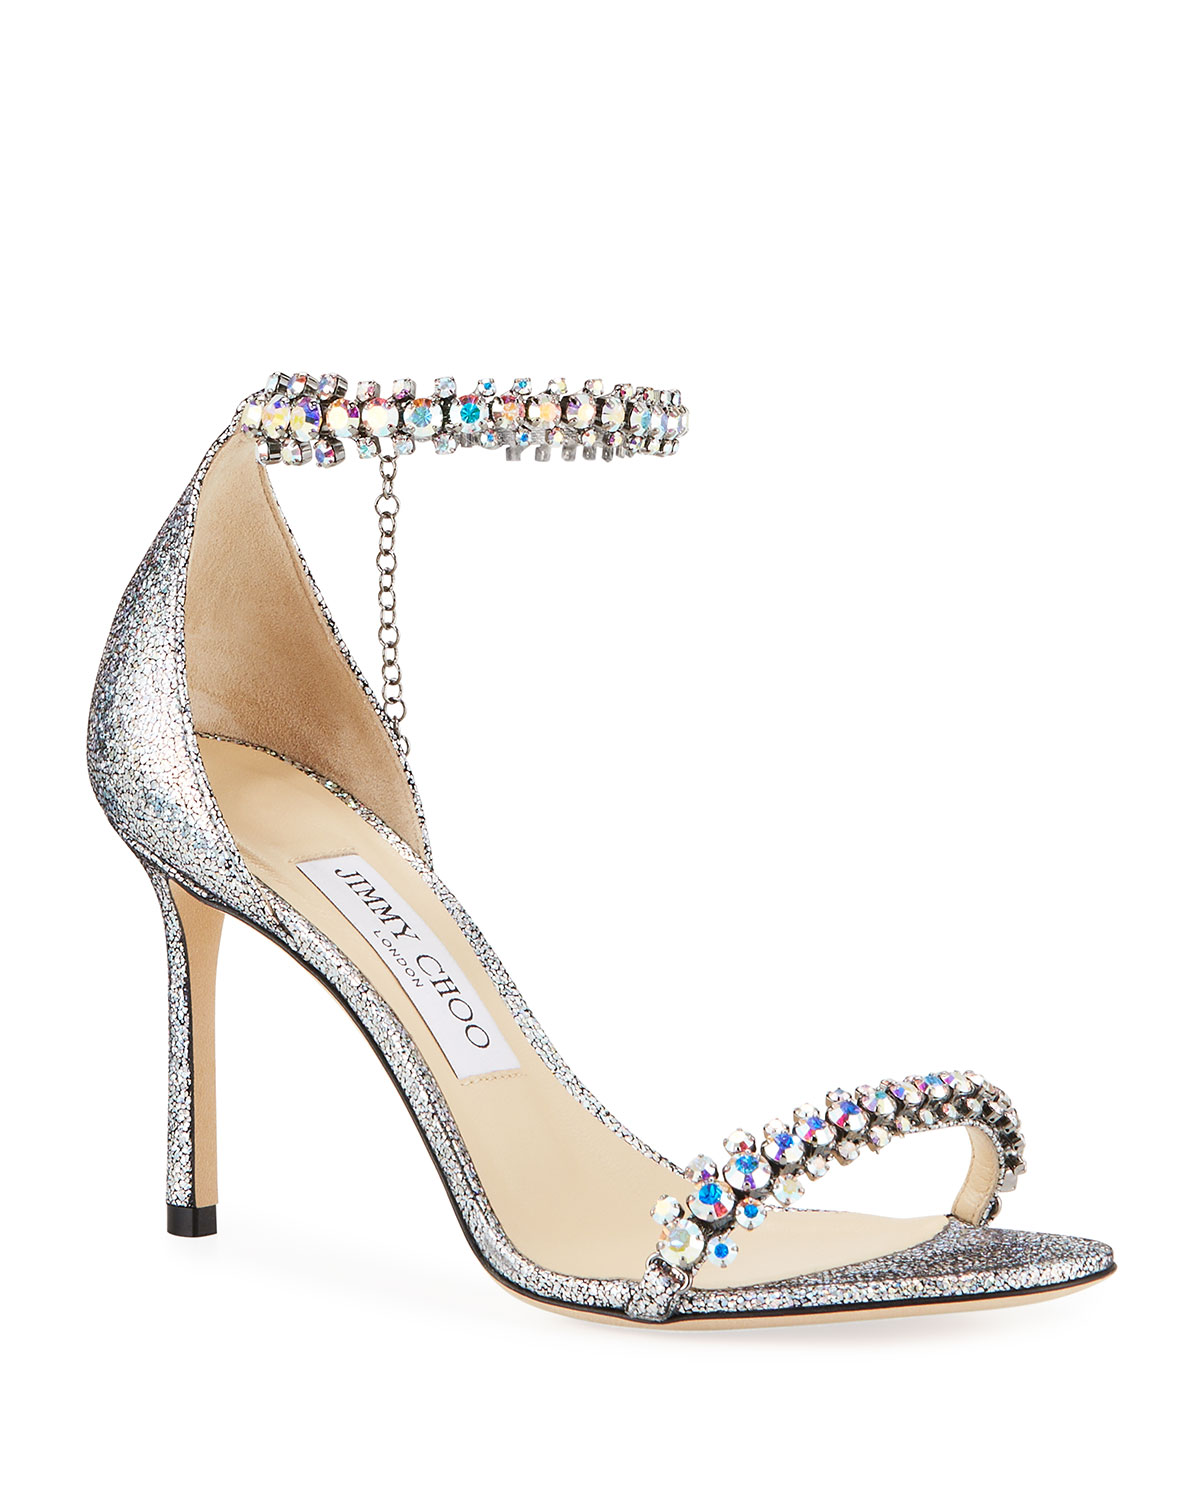 b3d279fa468c Jimmy Choo Shiloh Holographic Leather Sandals